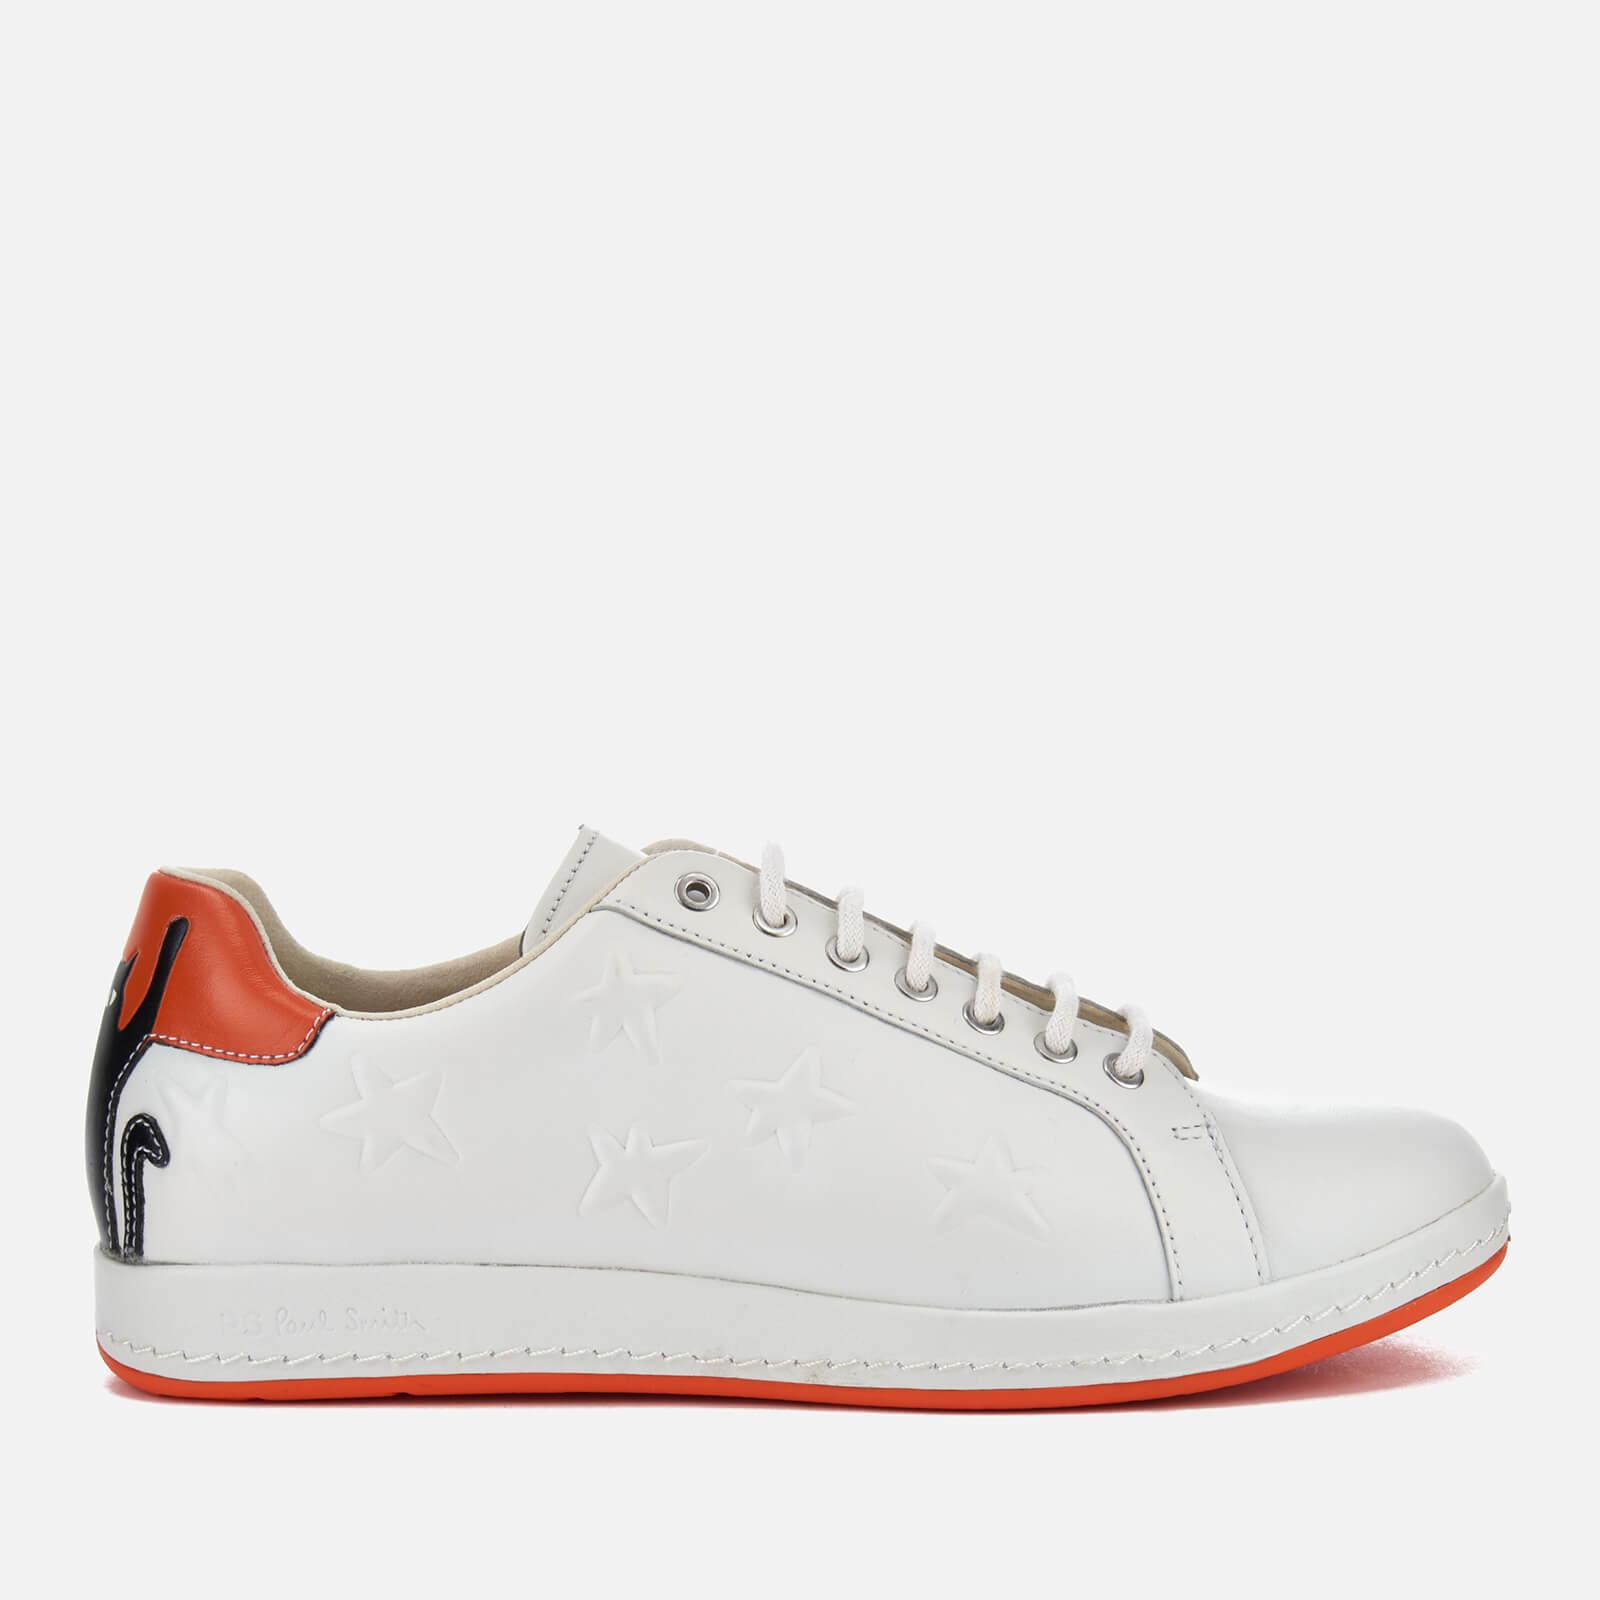 PS by PAUL SMITH Courts cheap sale comfortable marketable online buy cheap sale limited edition online for sale the cheapest 3FPaHBm6